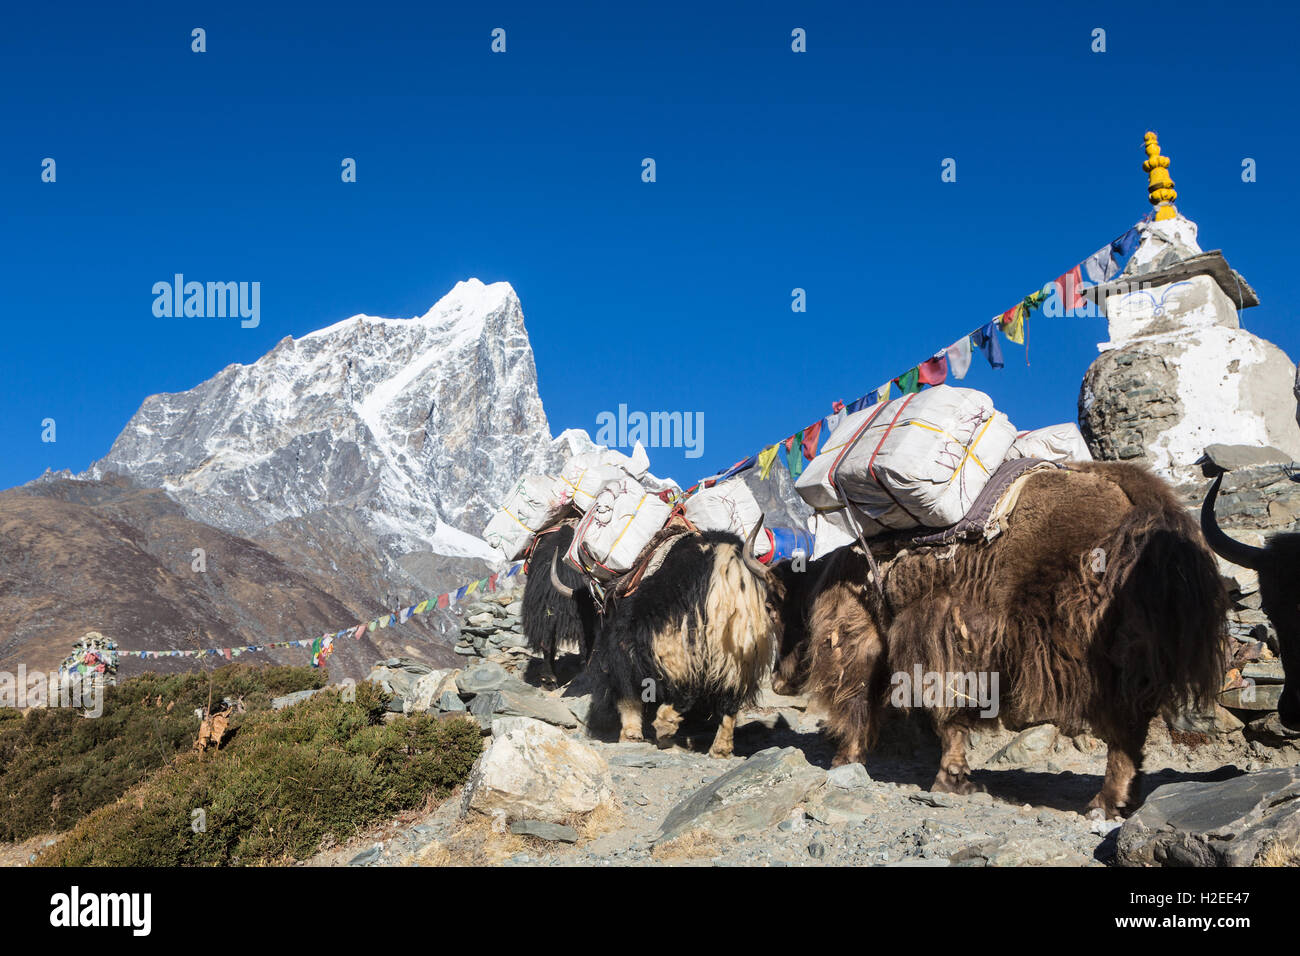 Yaks carrying good above the Dingboche (4800m) on the way to Everest Base camp in the Khumbu region of Nepal. The - Stock Image